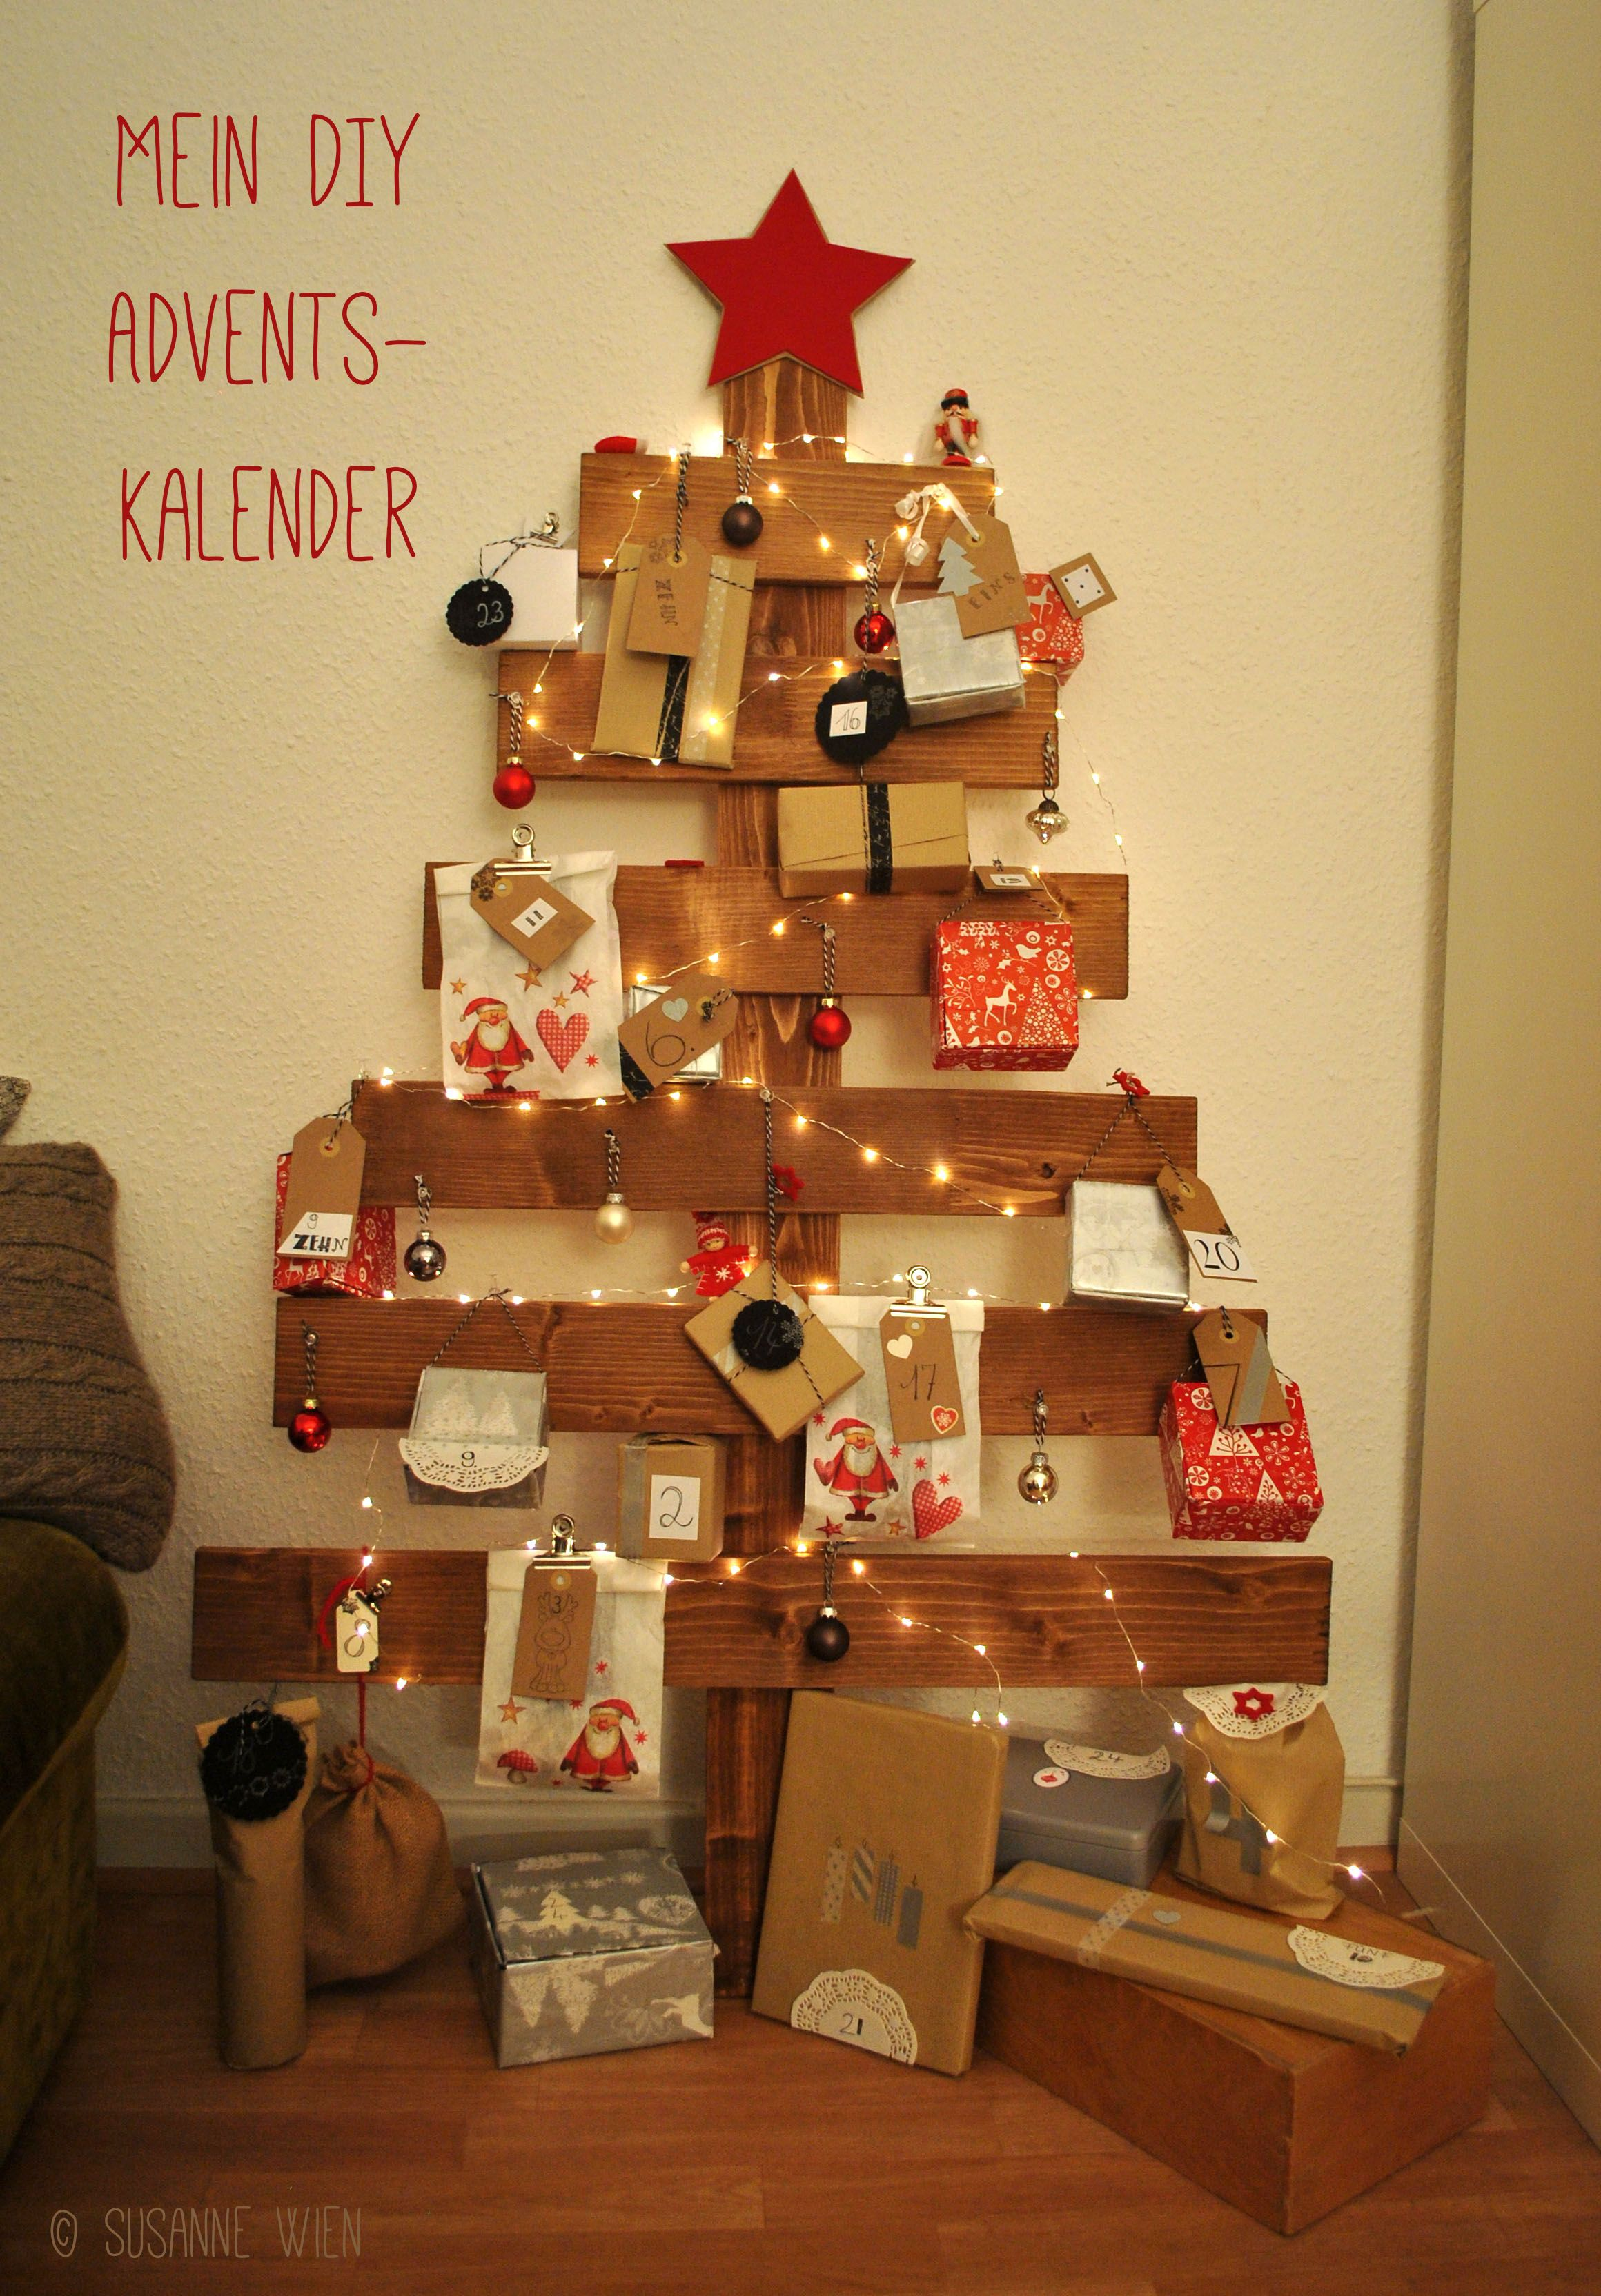 mein diy adventskalender aus einem alten lattenrost. Black Bedroom Furniture Sets. Home Design Ideas